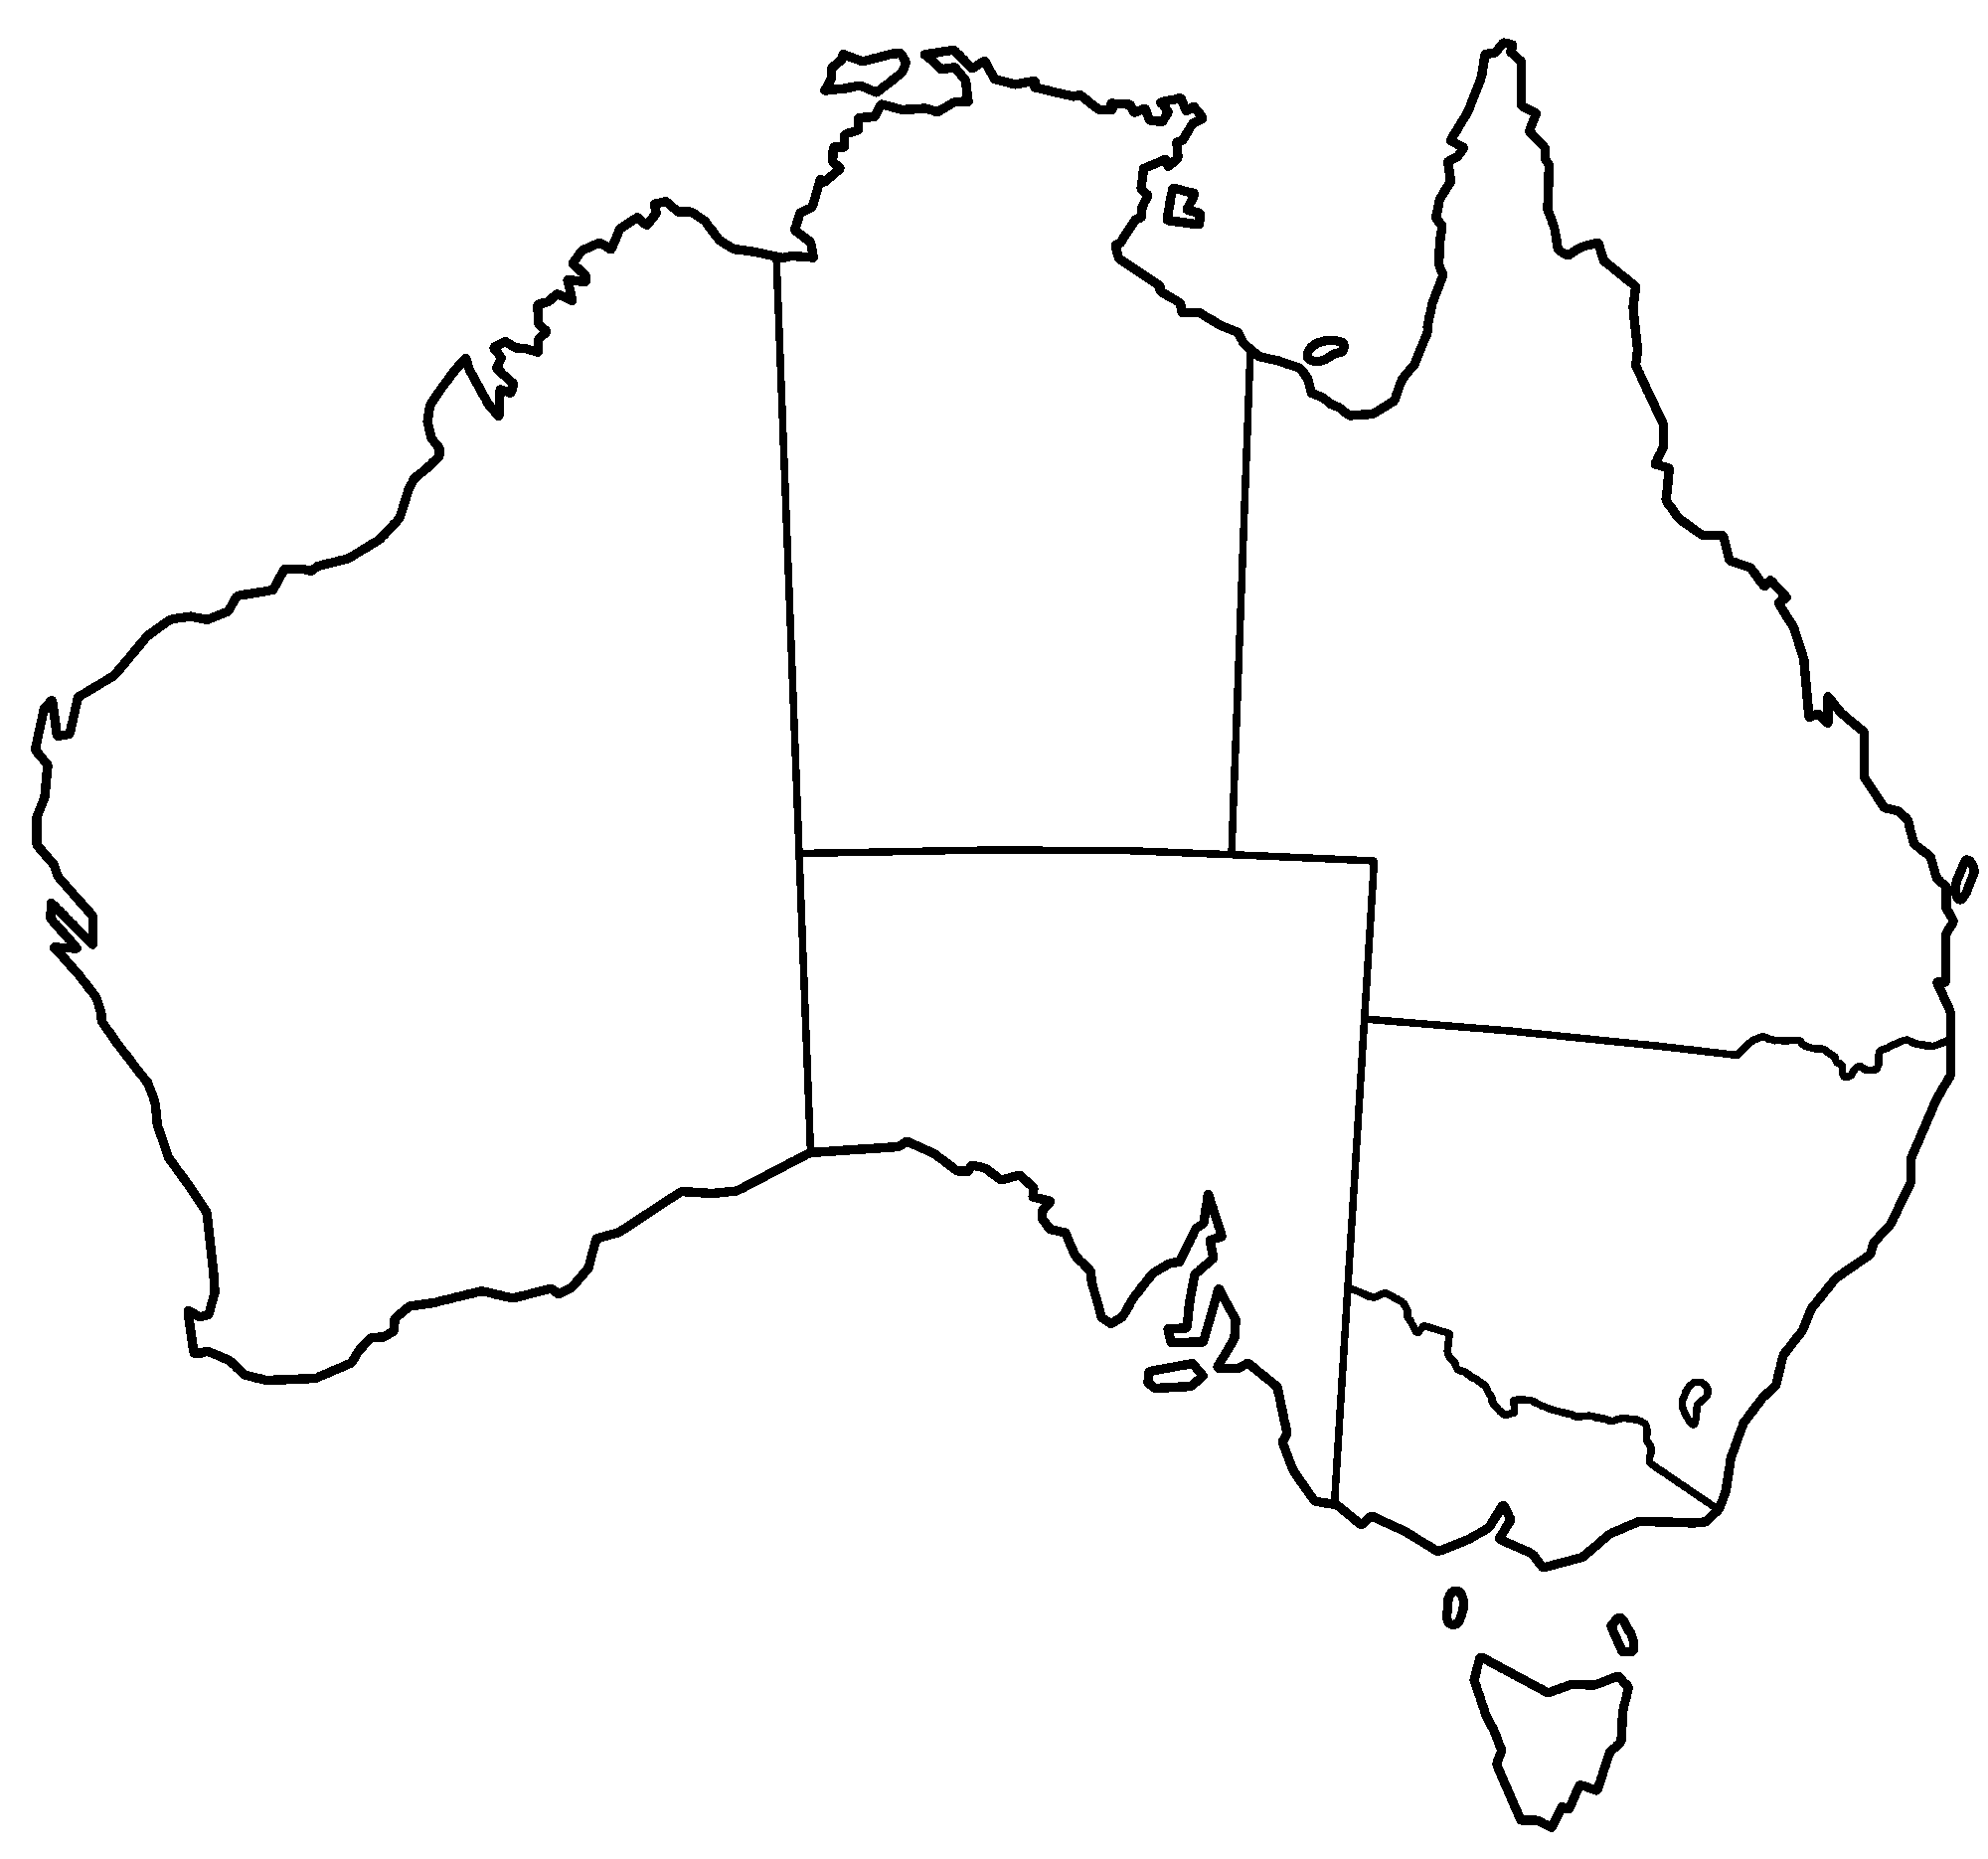 File:Australia states blank.png   Wikimedia Commons